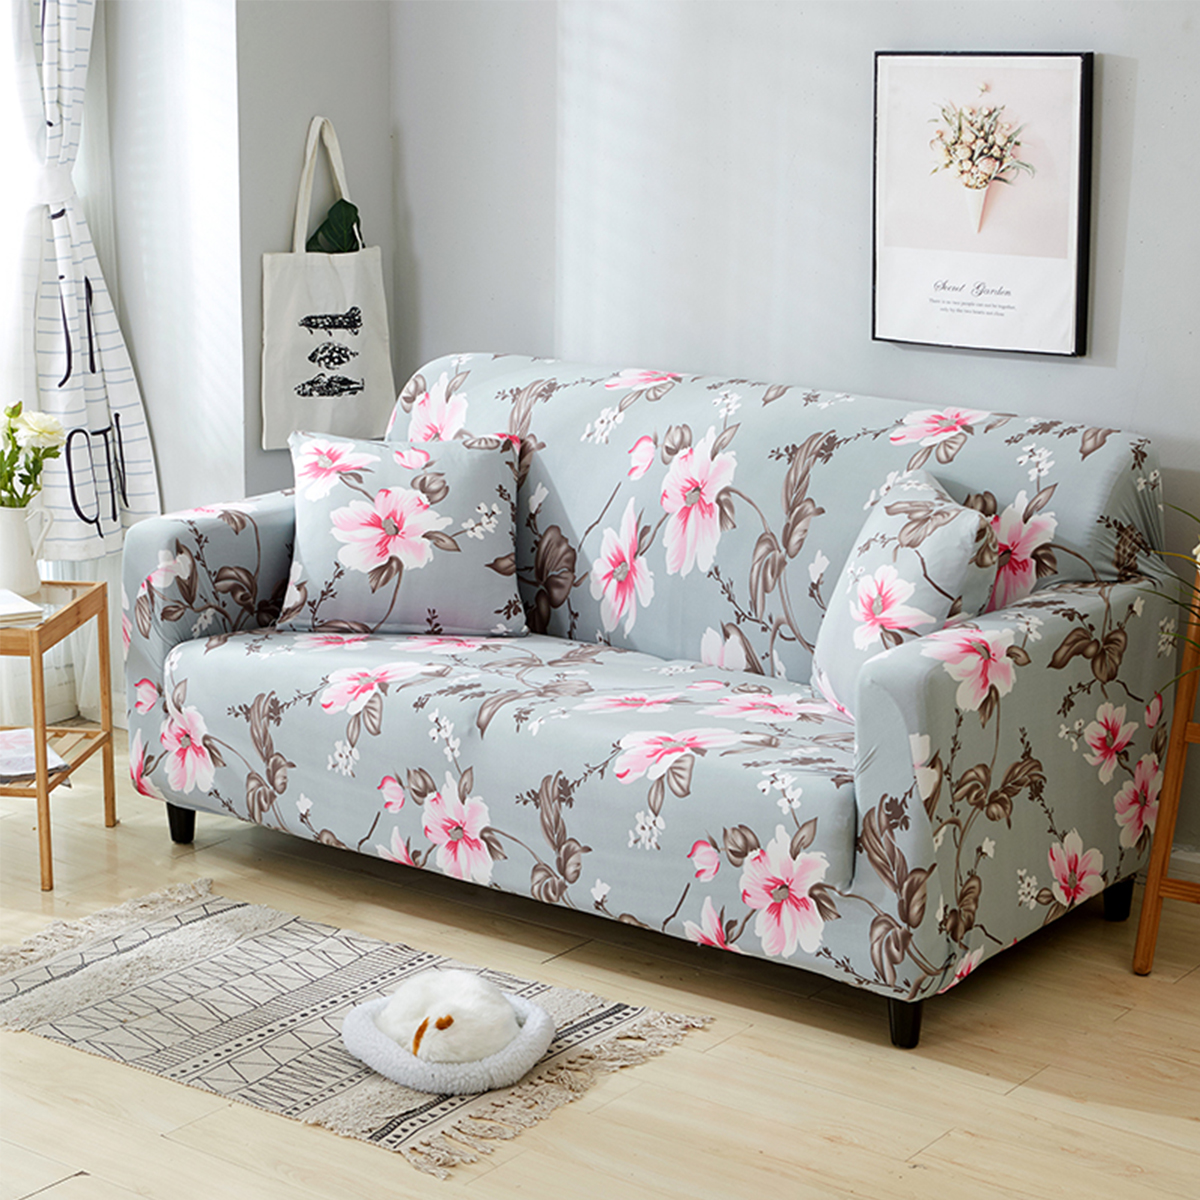 Marvelous Us 4 34 42 Off 1 2 3 4 Peony Seater Sofa Funiture Cover Chair Couch Protect Loveseat Slipcover All Inclusive Slip Resistant Sofa Cover In Sofa Cover Forskolin Free Trial Chair Design Images Forskolin Free Trialorg